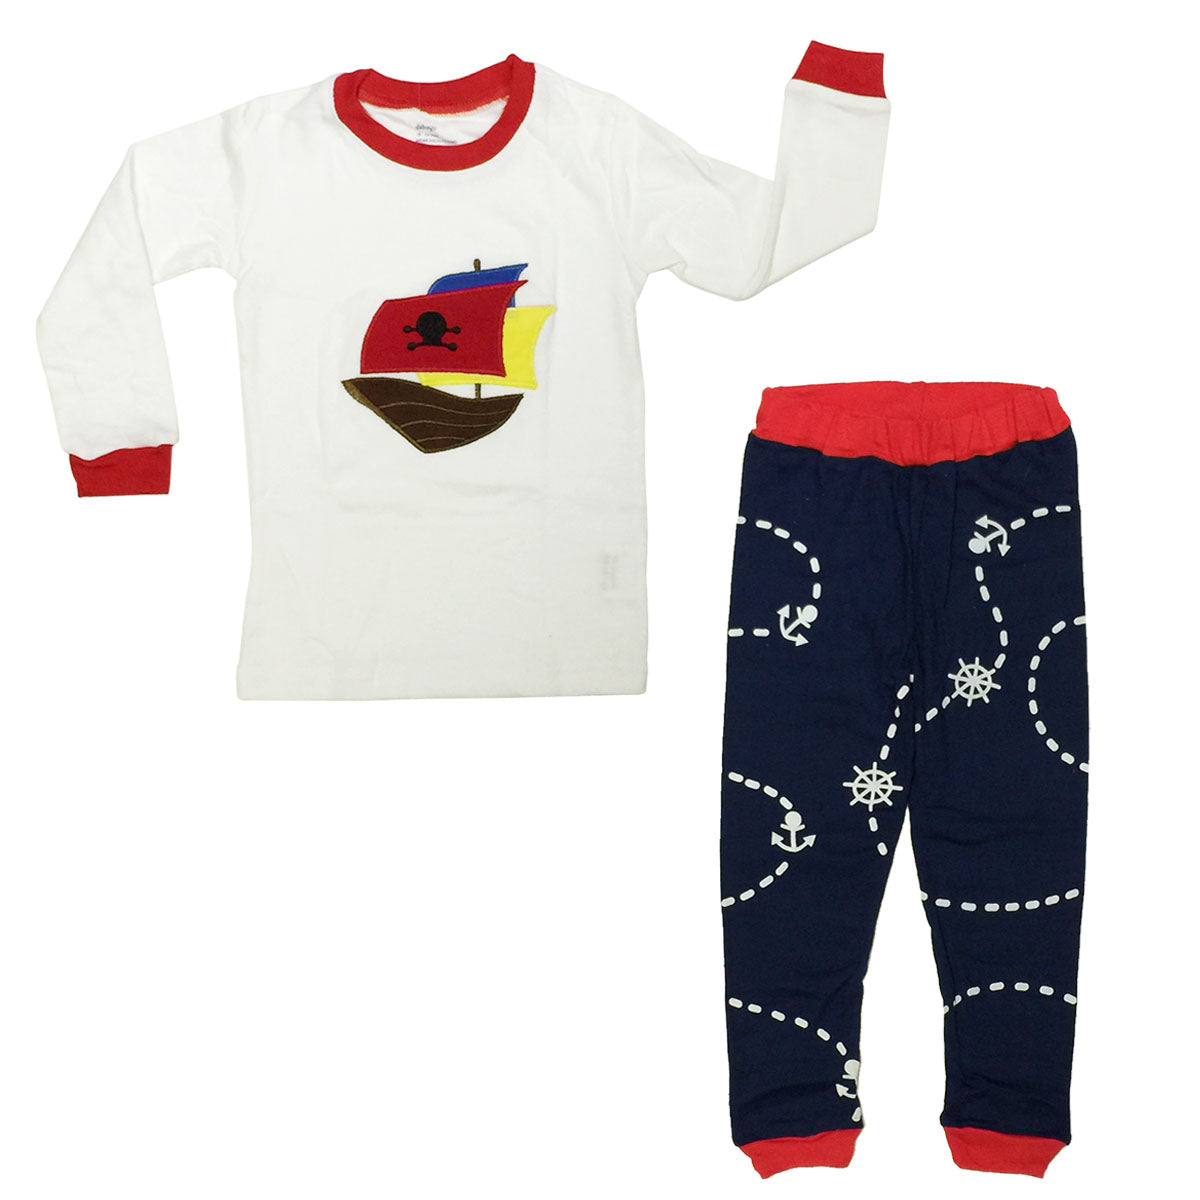 Dabuyu Pirate Children's Pajamas